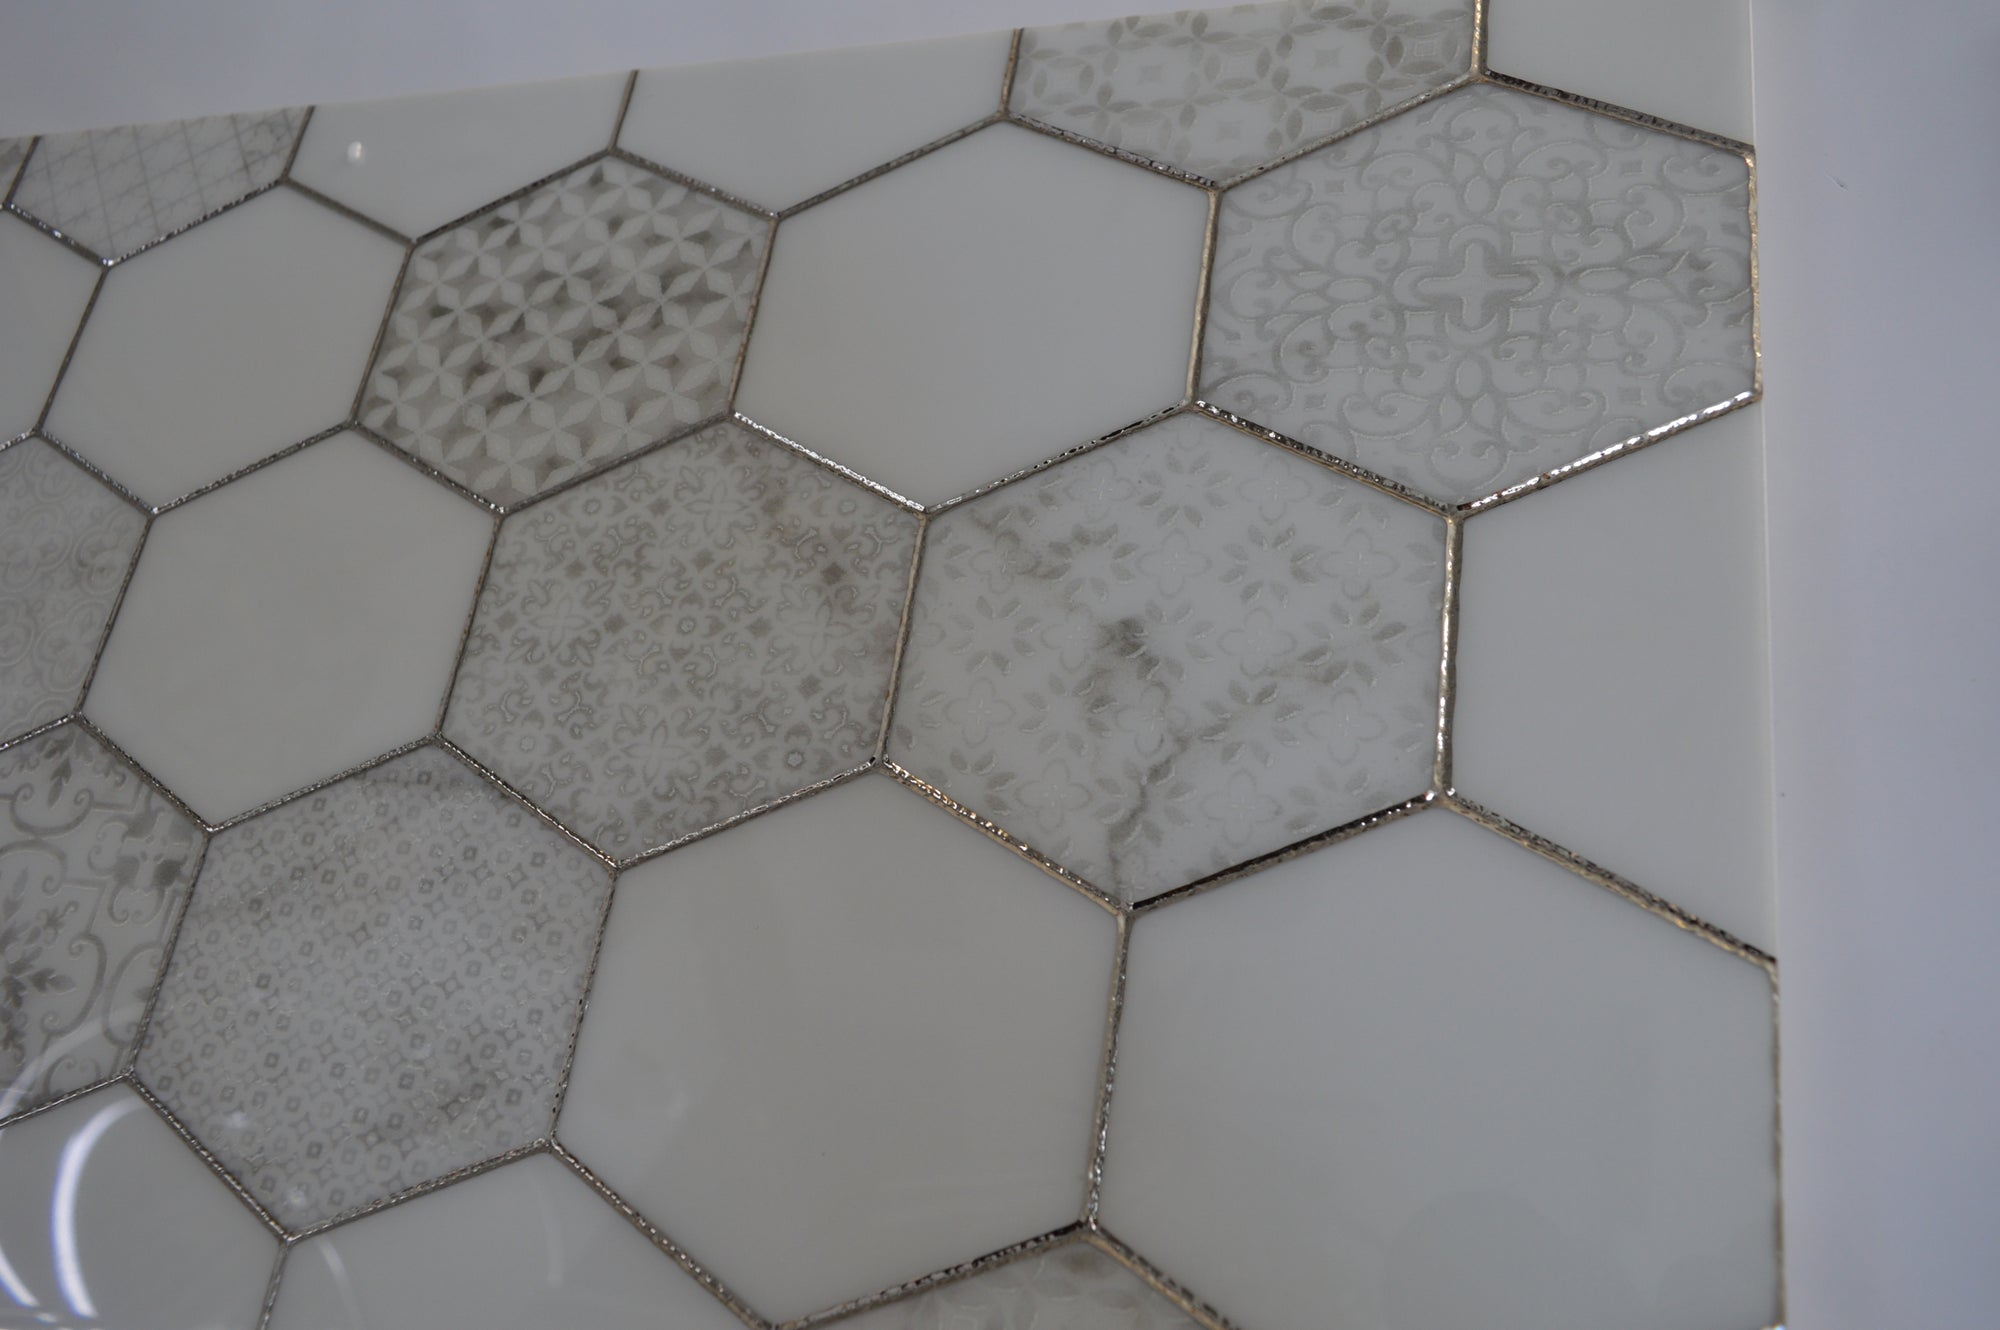 Porcleain Decor Tiles in HEX Greyscale with golden trim | 1 sheet 60 x 30 cm | 6 tiles 1 sqm